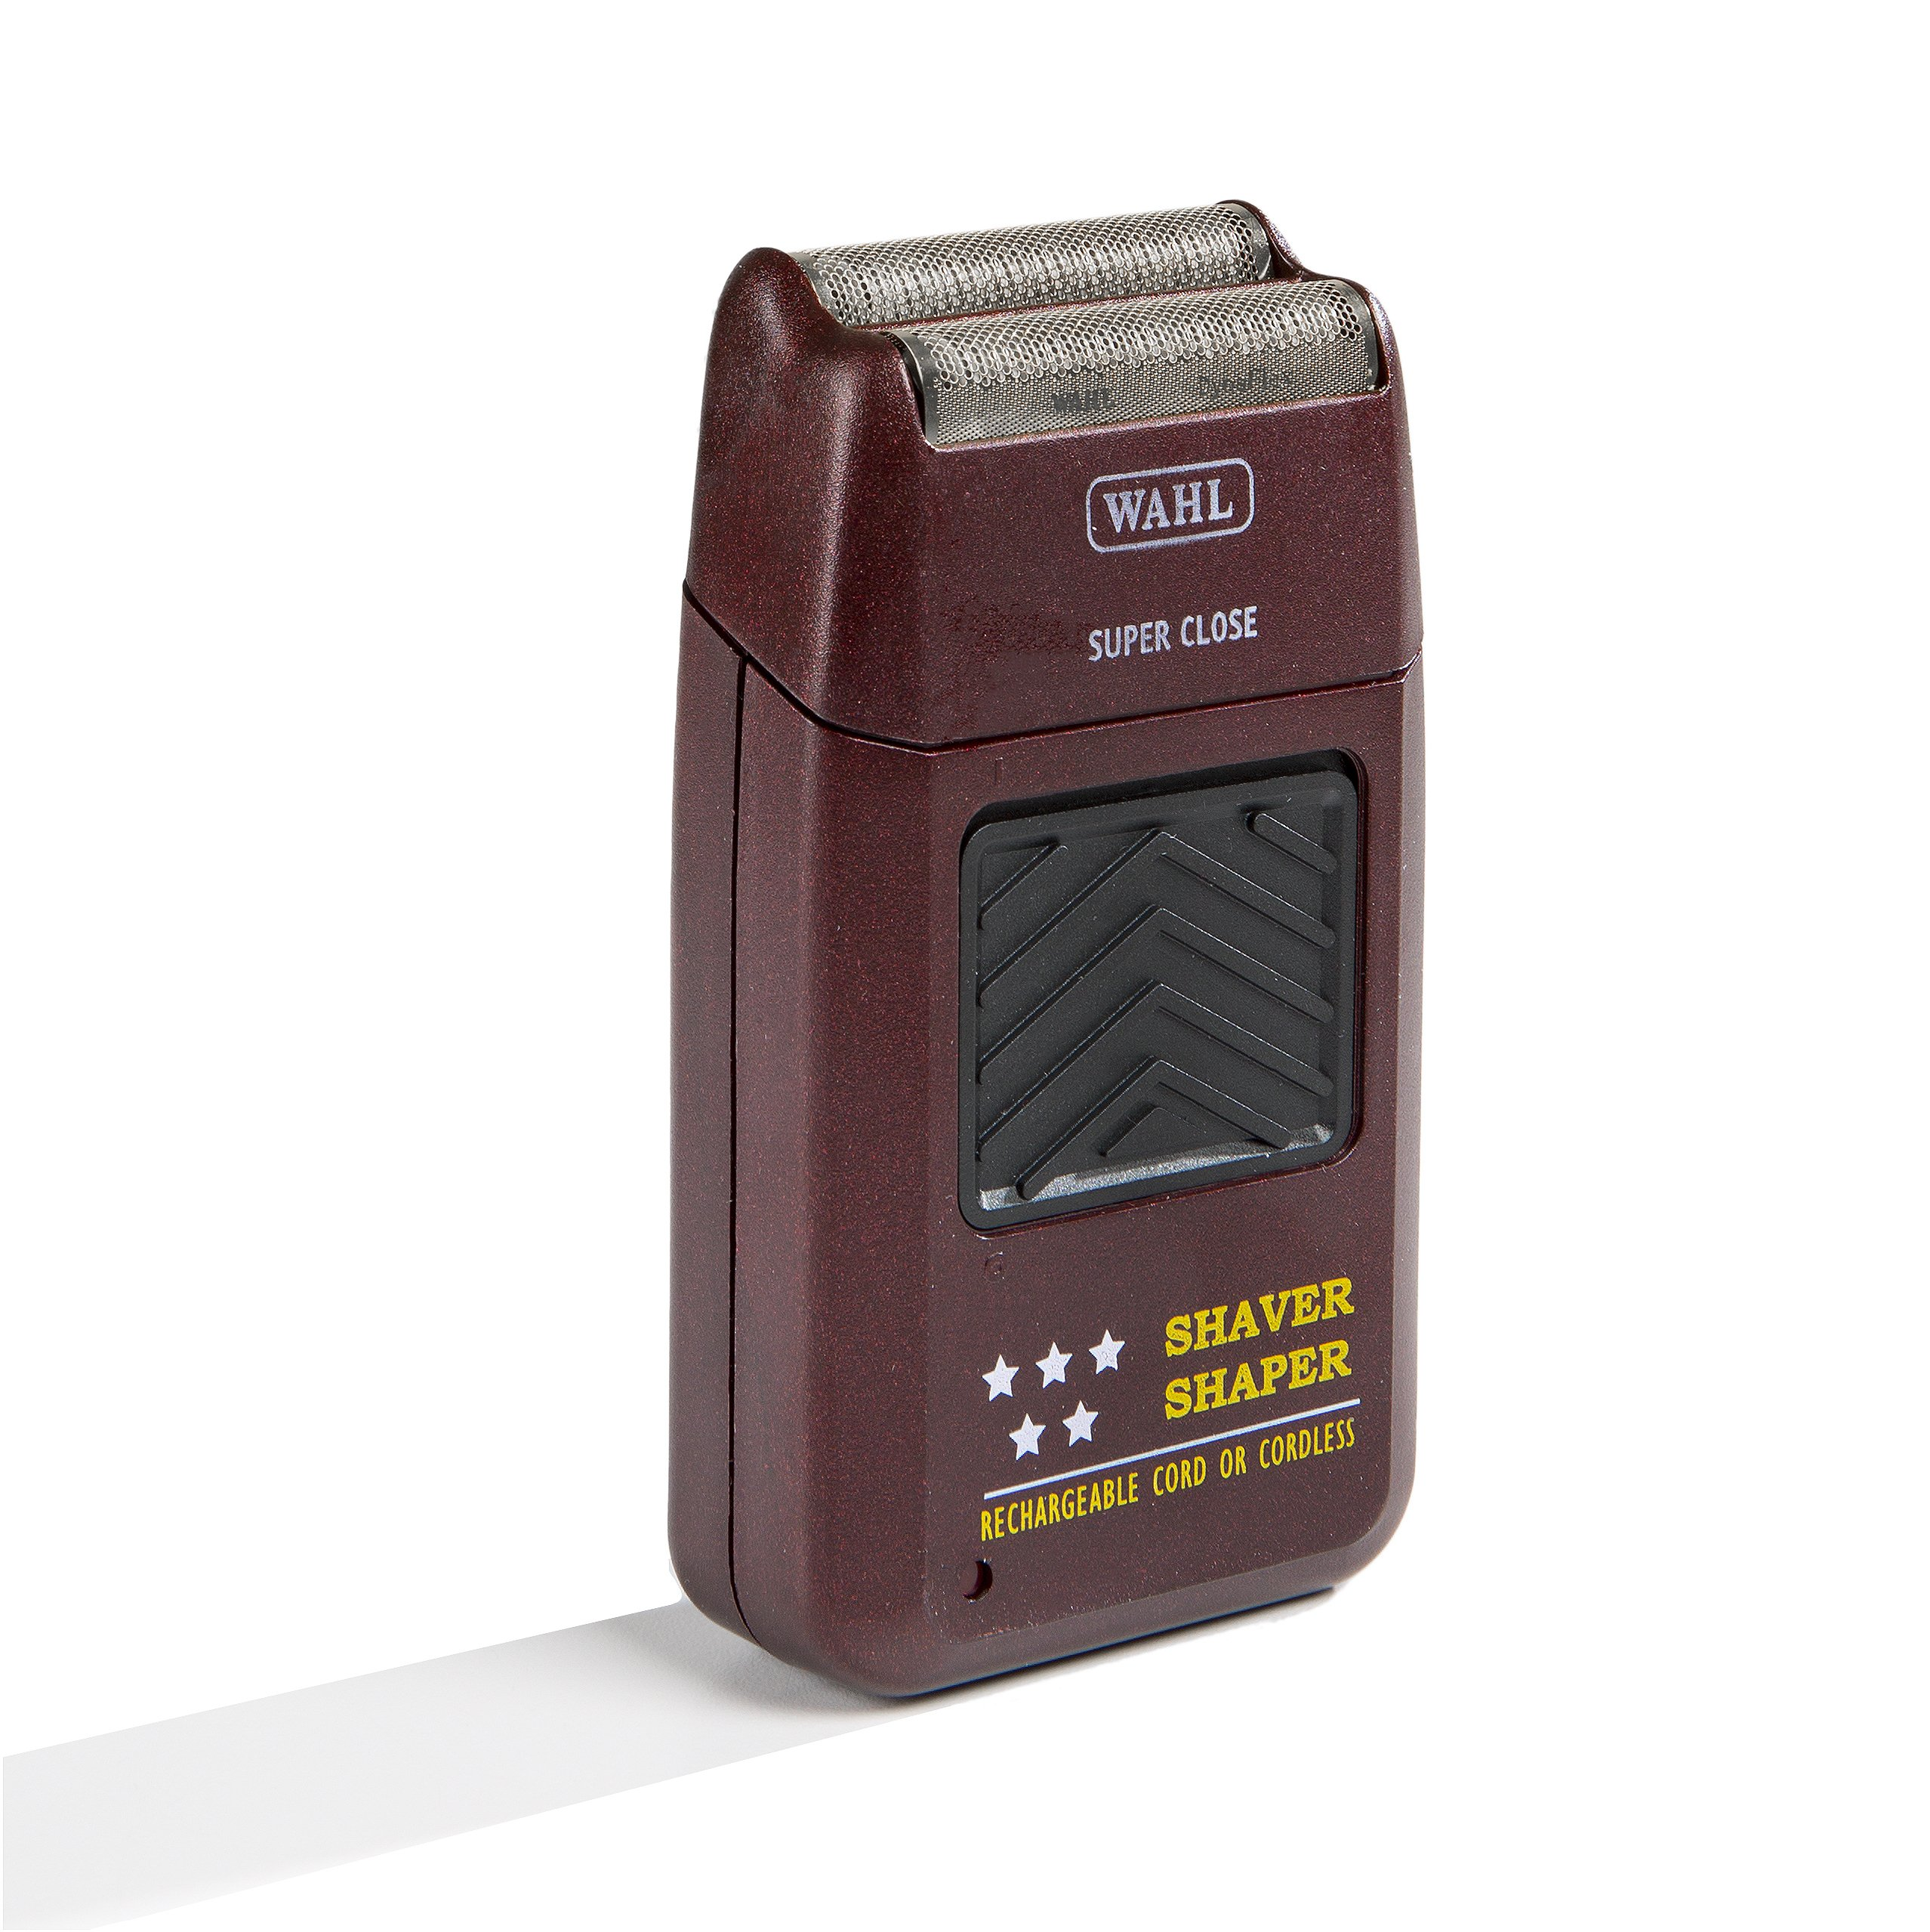 Wahl Professional 5-Star Series #7031-400 Replacement Foil Assembly – Red & Silver – Super Close by Wahl Professional (Image #6)